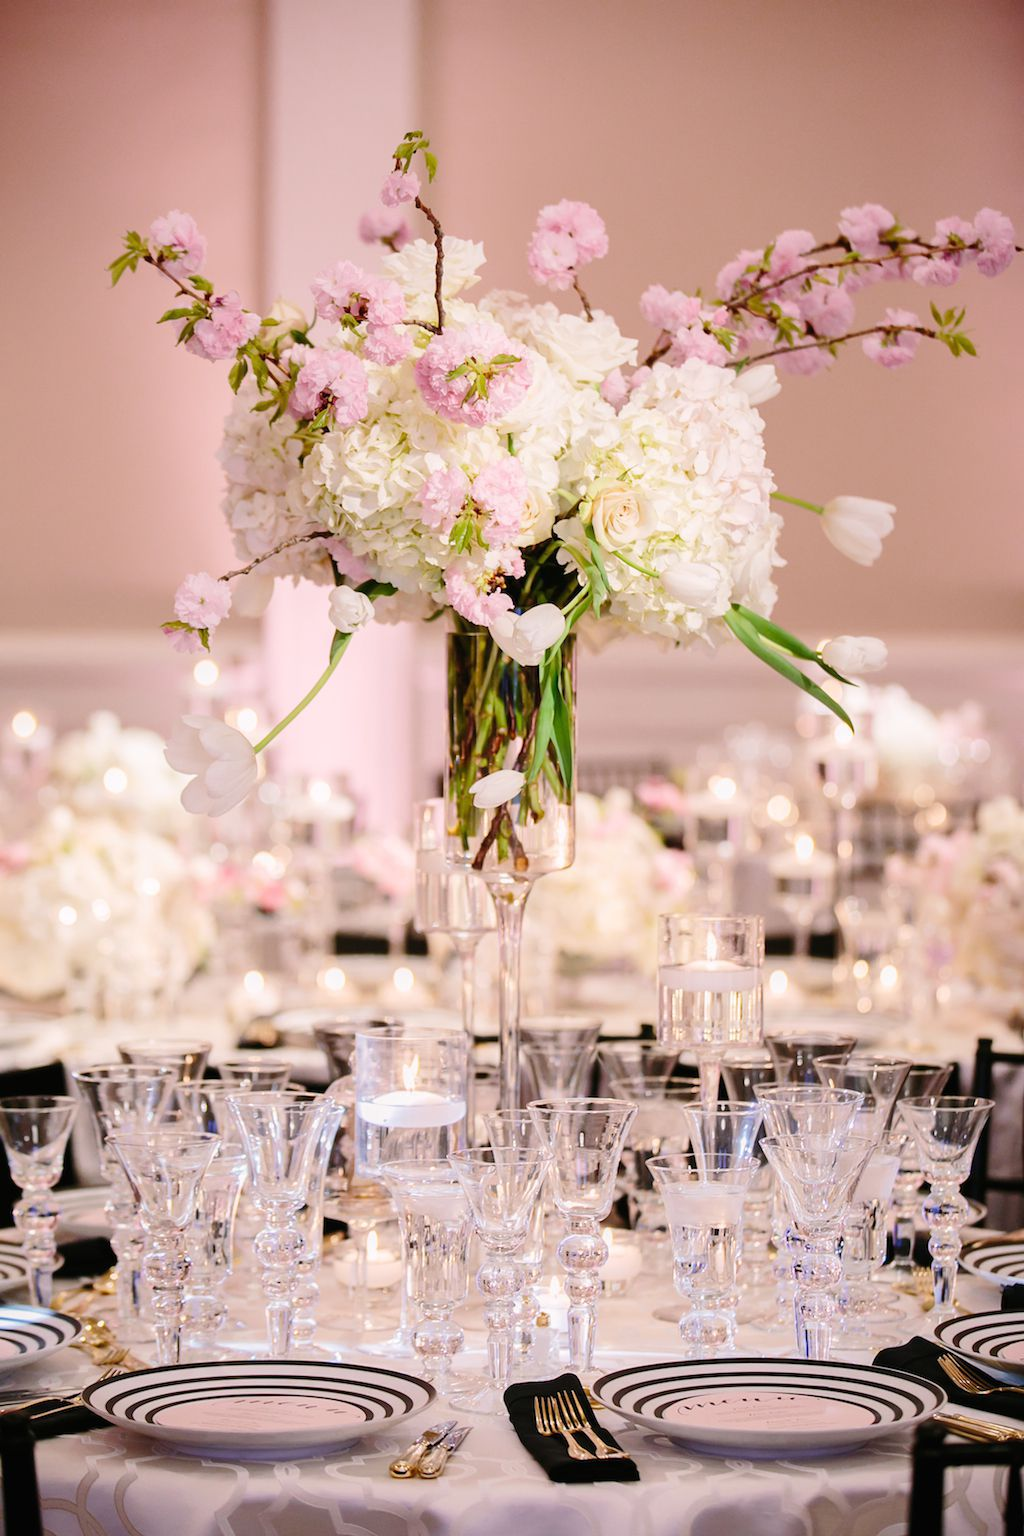 Oriental Themed Weddings With Cherry Blossom Wedding Decorations ...